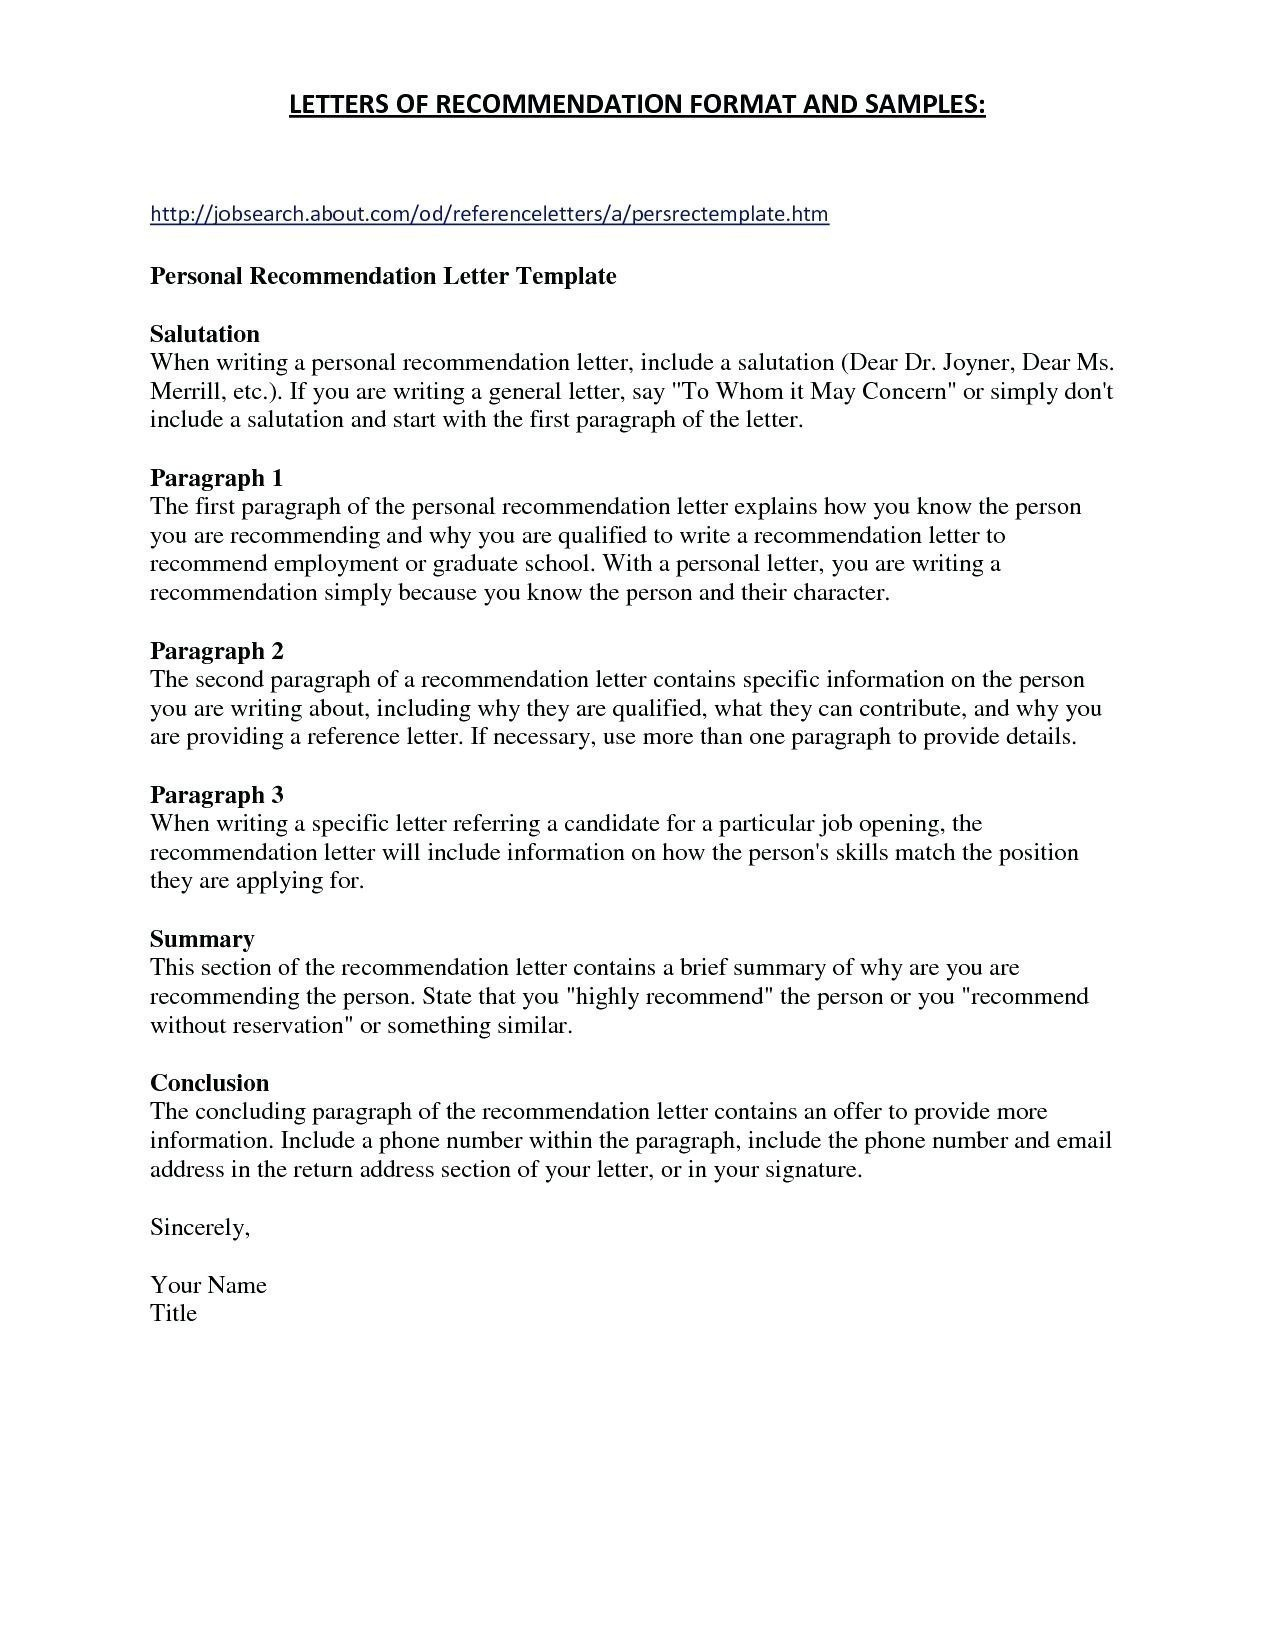 Basic Recommendation Letter Template - Job Fer Cancellation Letter Fresh Job Fer Cancellation Letter Best